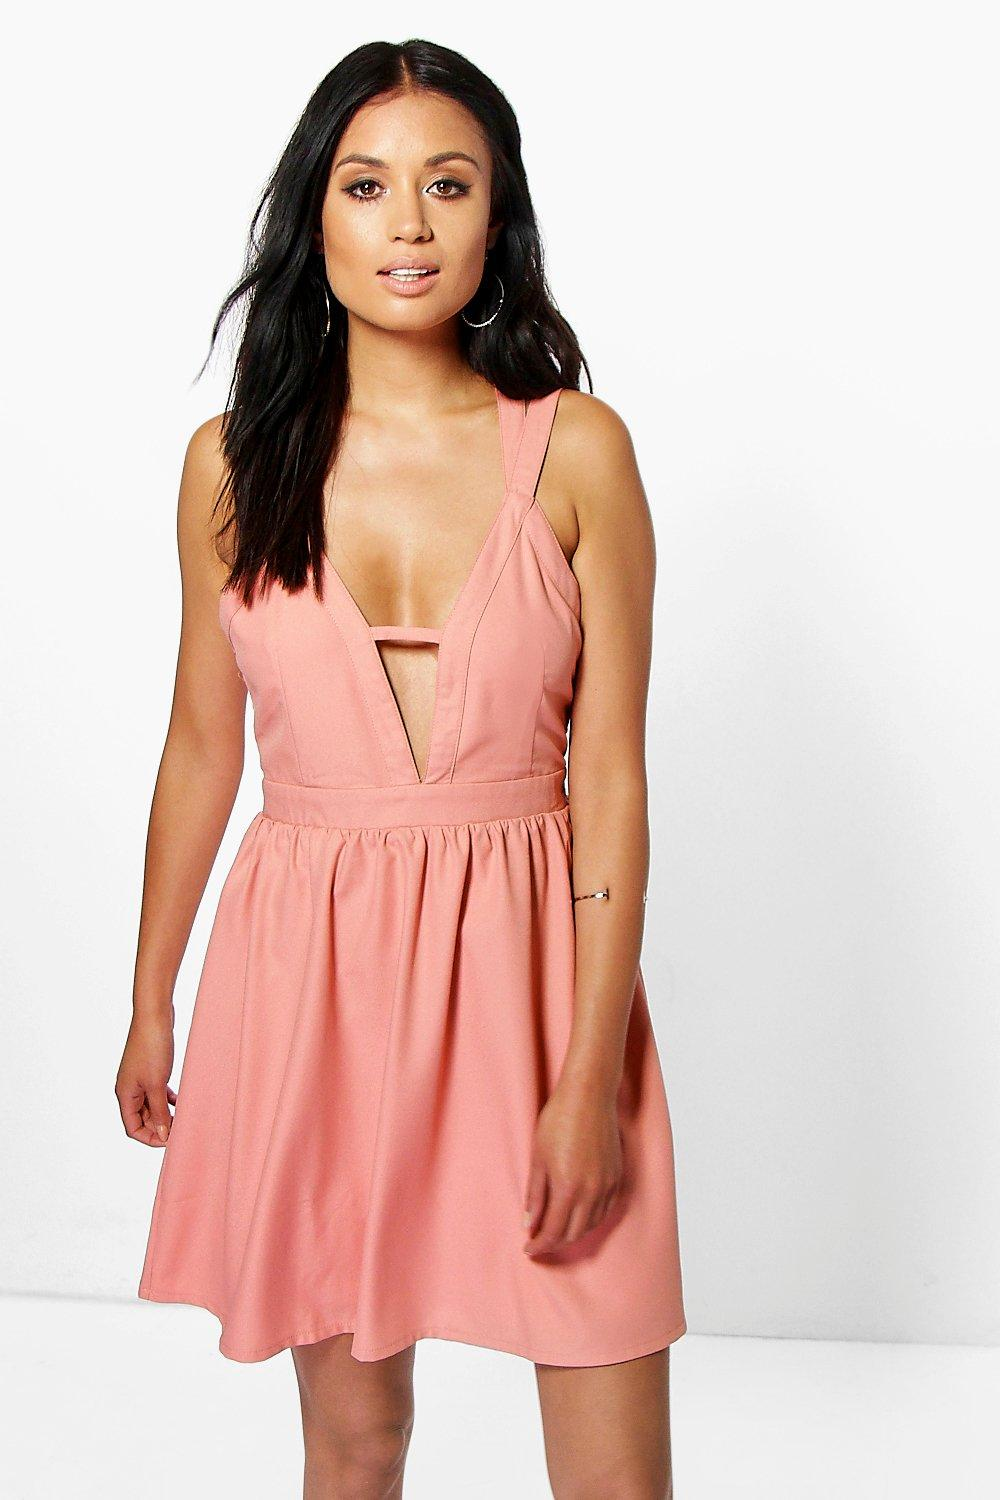 Strappy Detail Skater Dress - blush